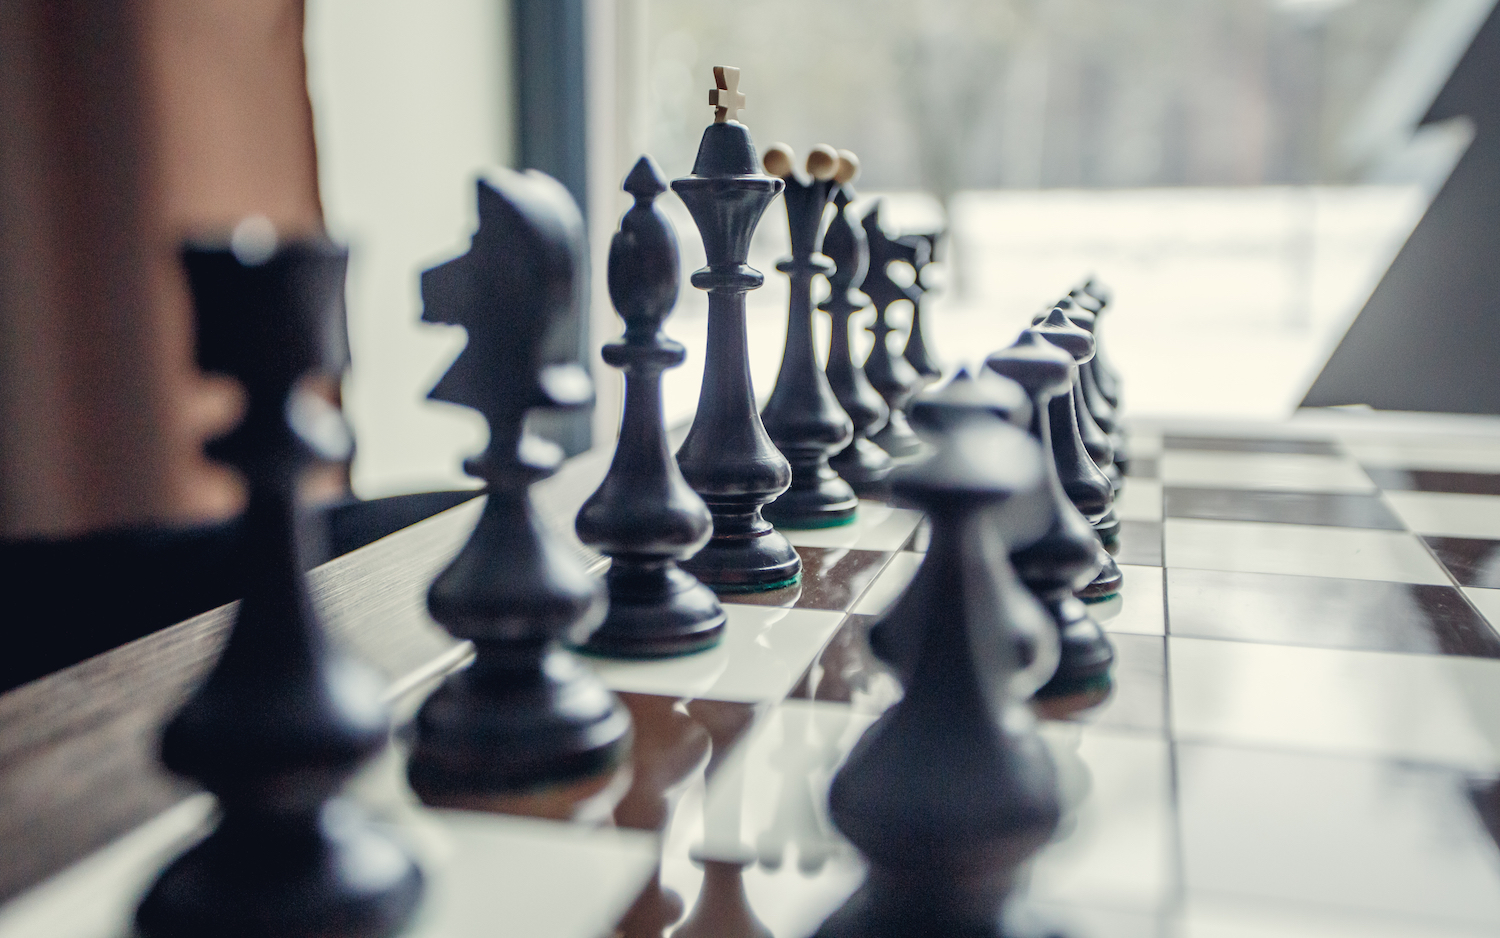 DeFi Protocol Tranchess Raises $1.5M in Seed Round Led by Three Arrows, Spartan